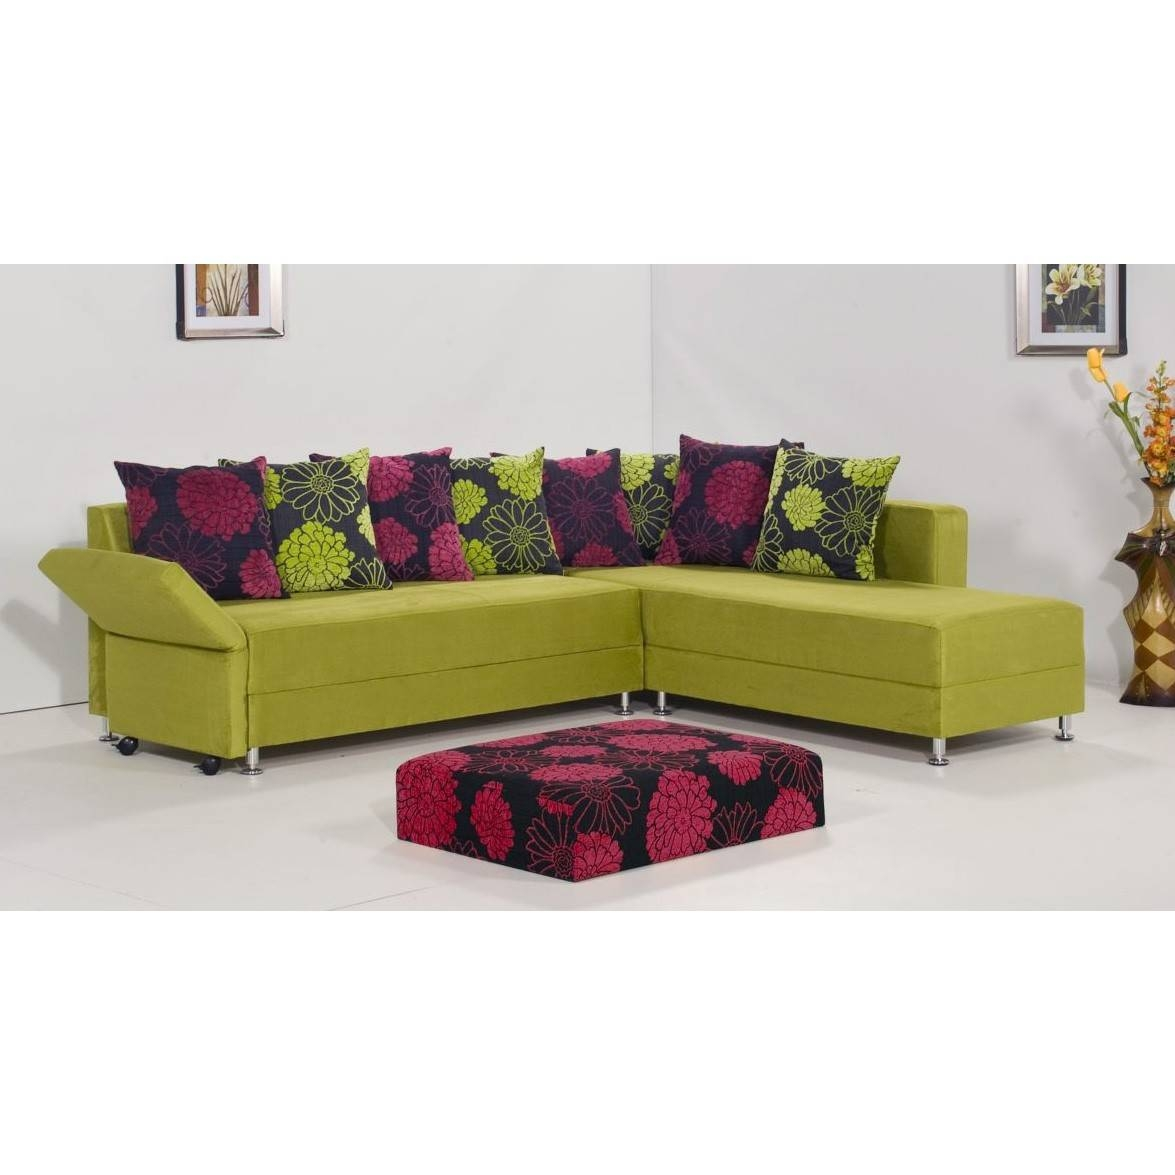 Home Interiror Decor Blog - Part 2 regarding Green Leather Sectional Sofas (Image 6 of 15)